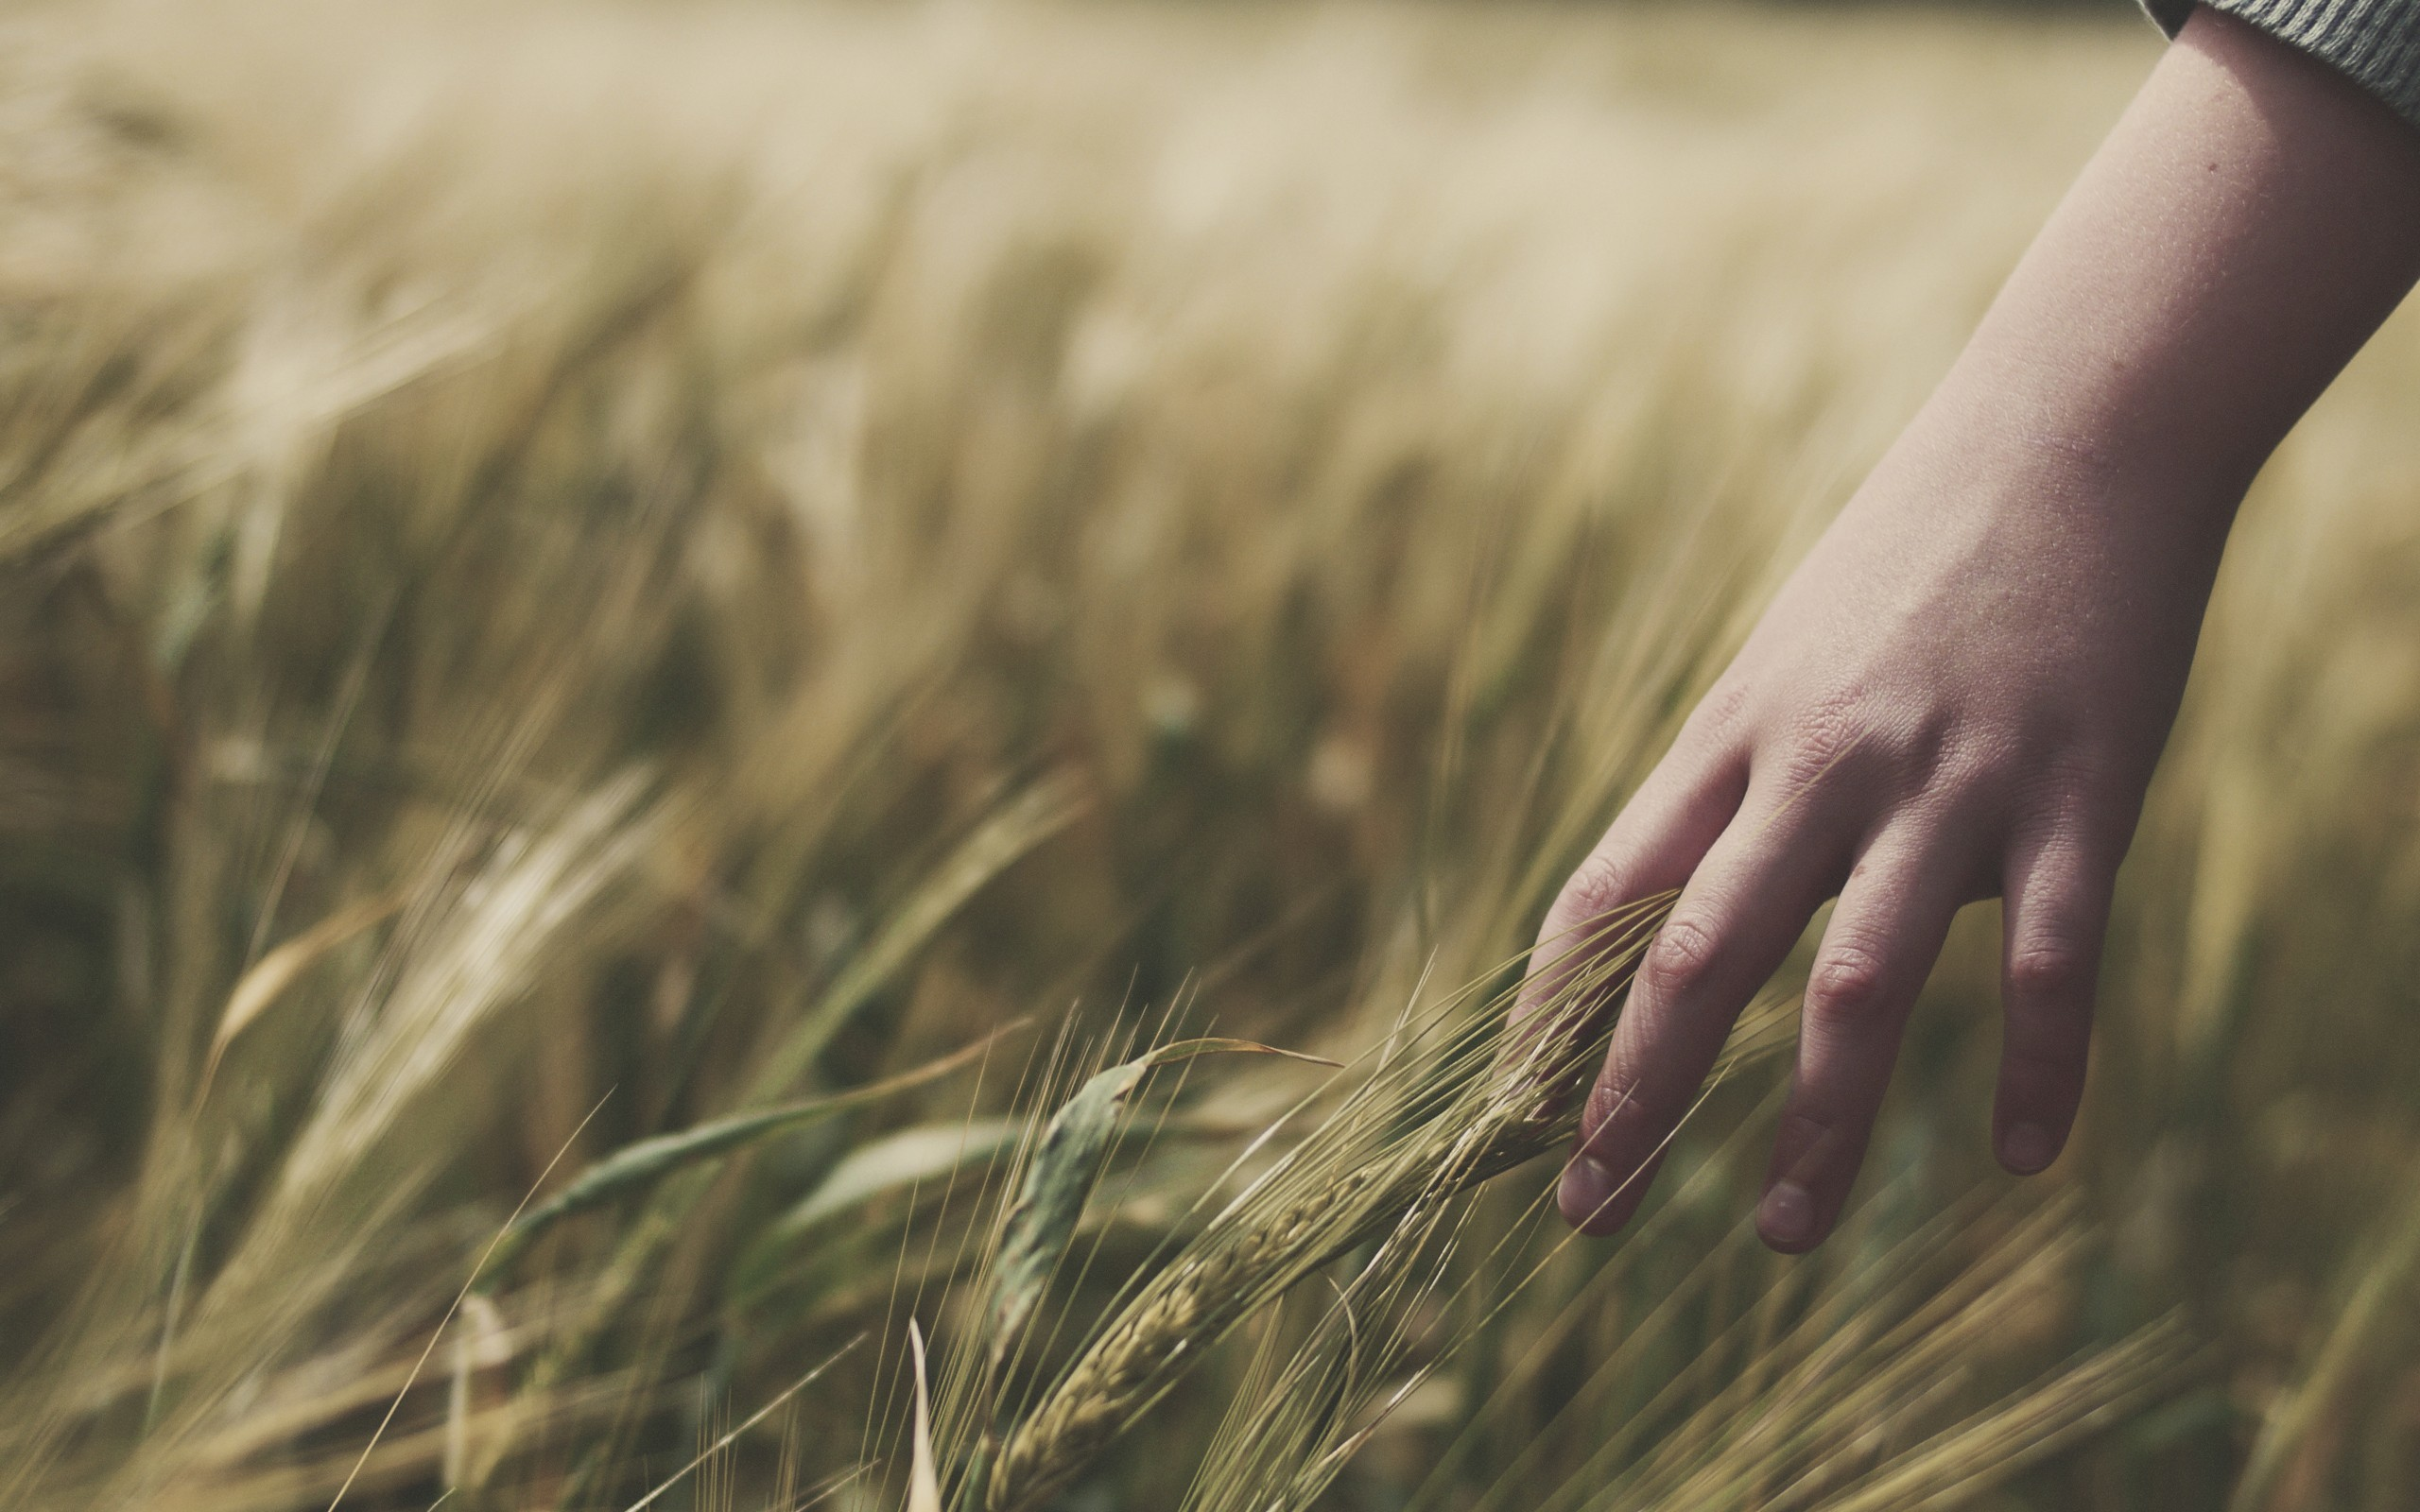 hands spikelets HD Wallpaper